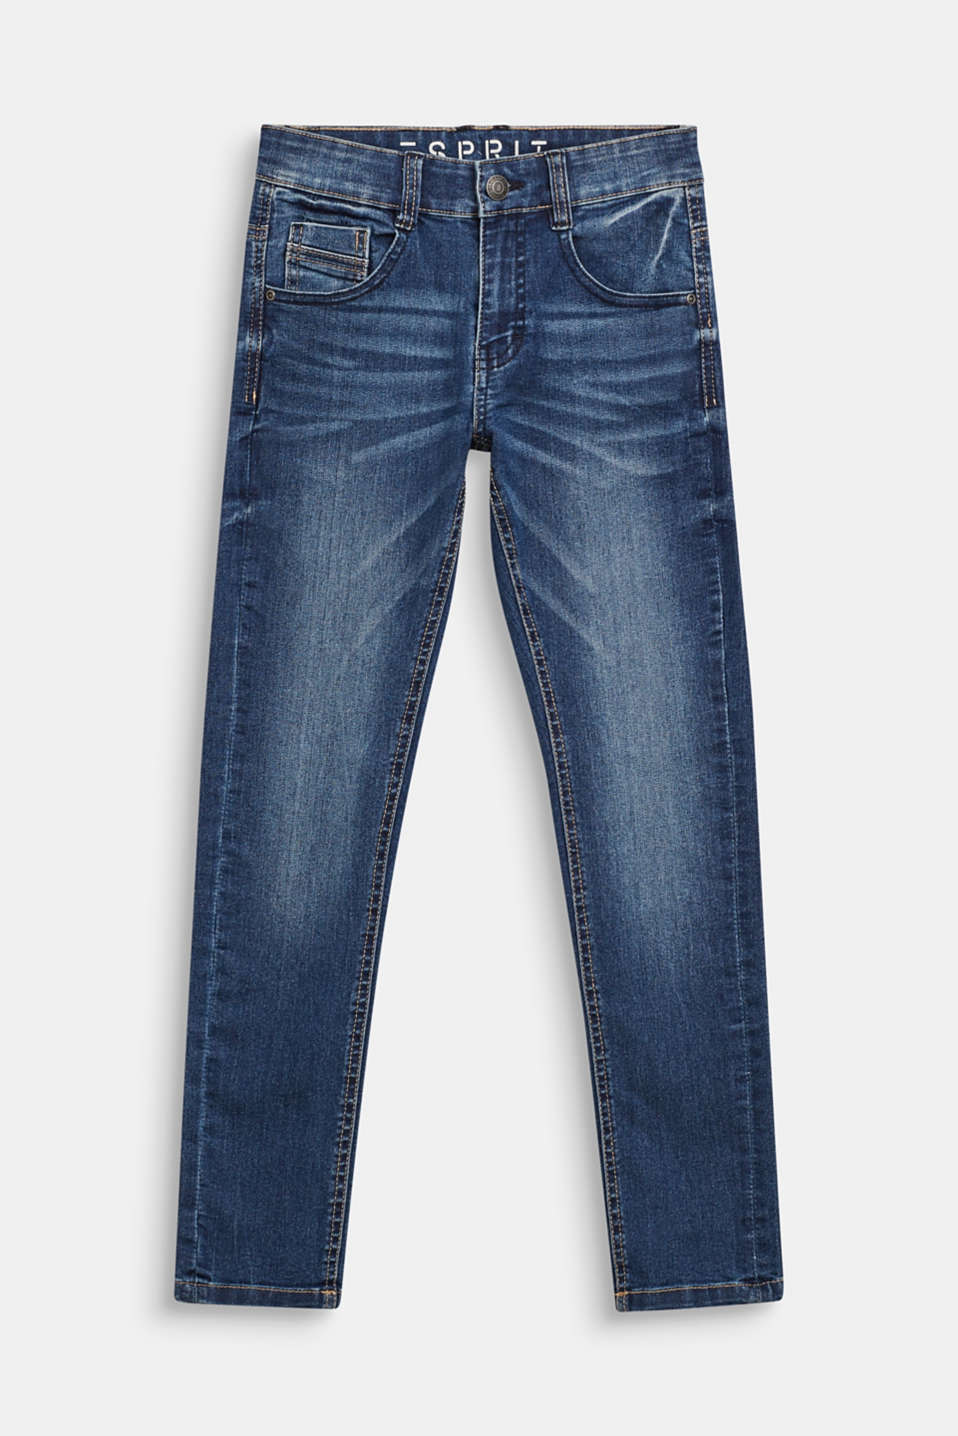 Esprit - Stretch jeans with an adjustable waist